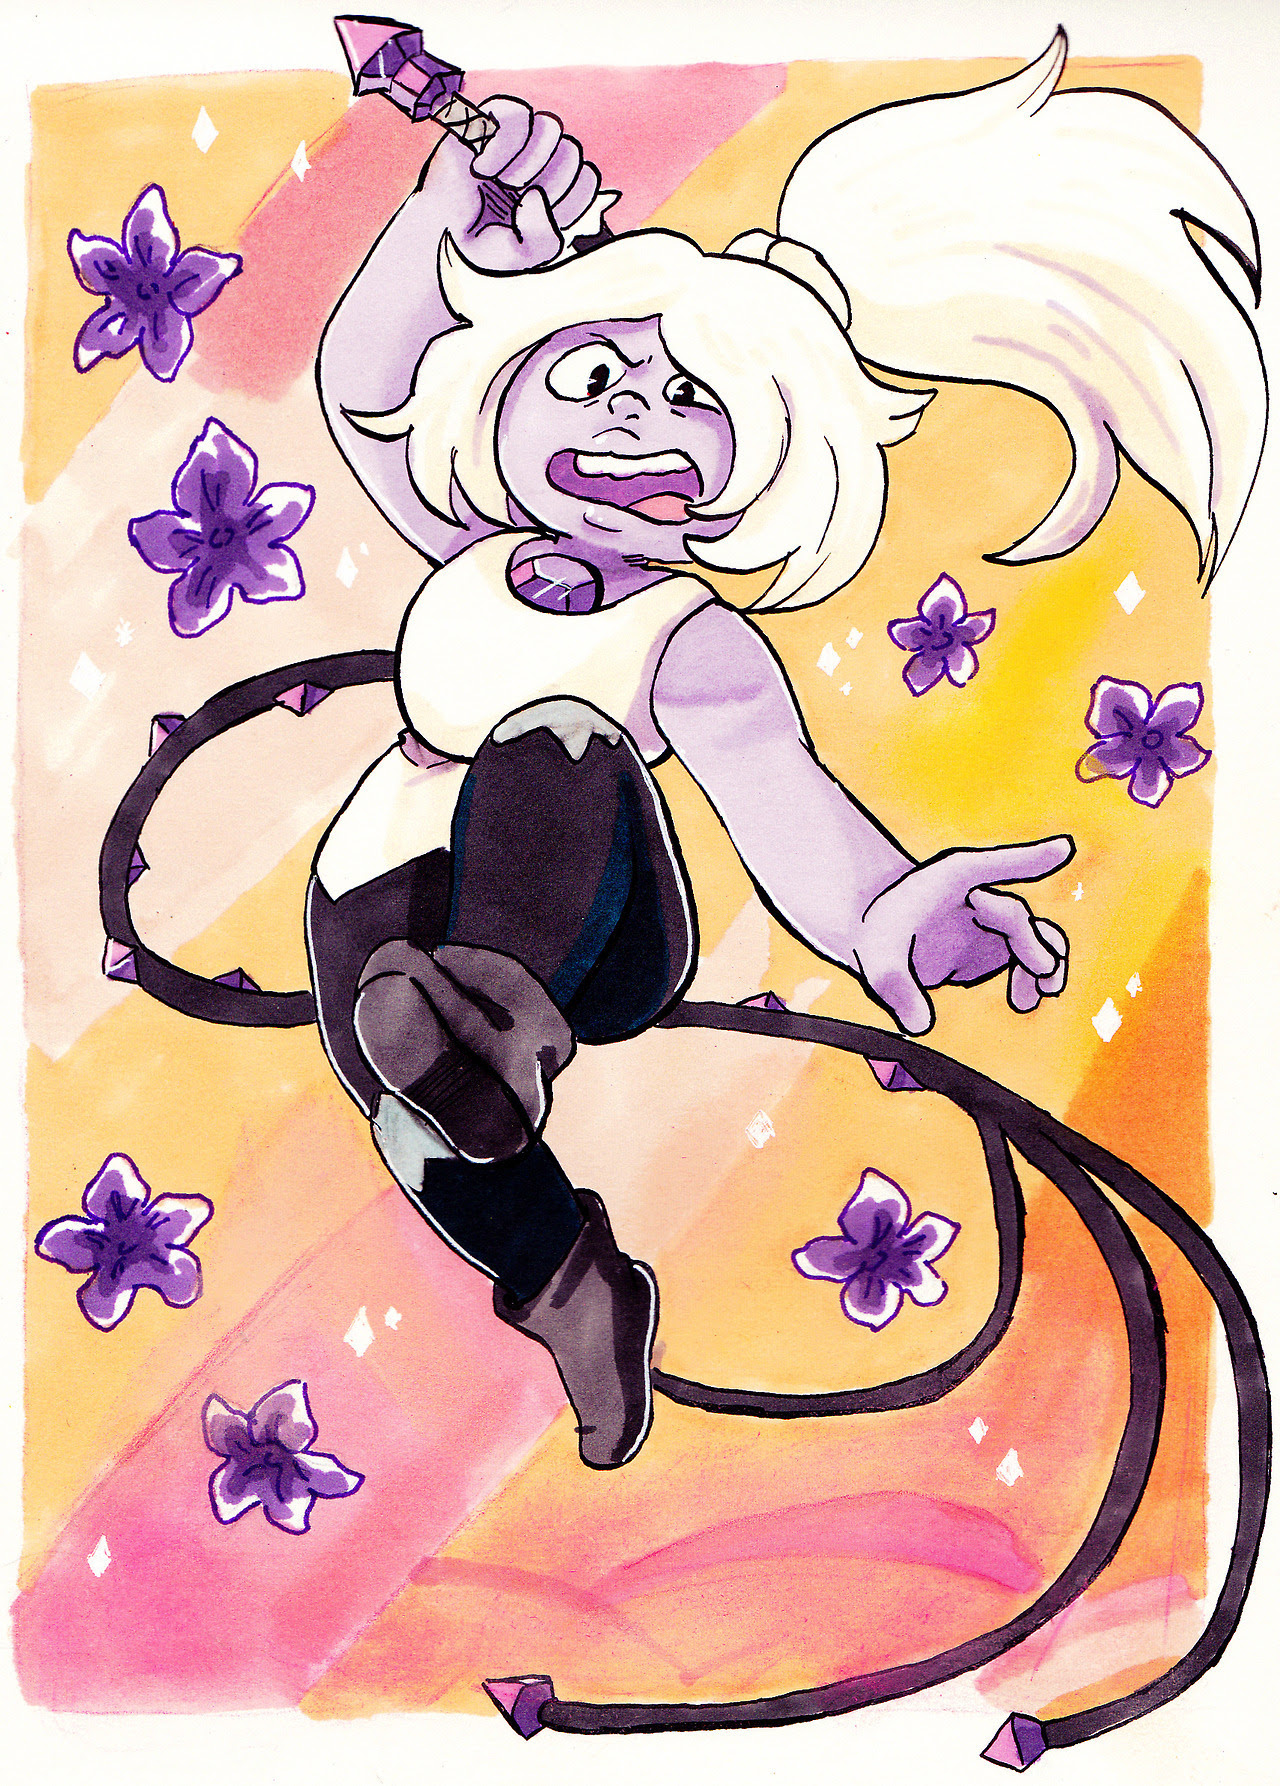 Amethyst! I should buy more promarkers, lack of colours really!